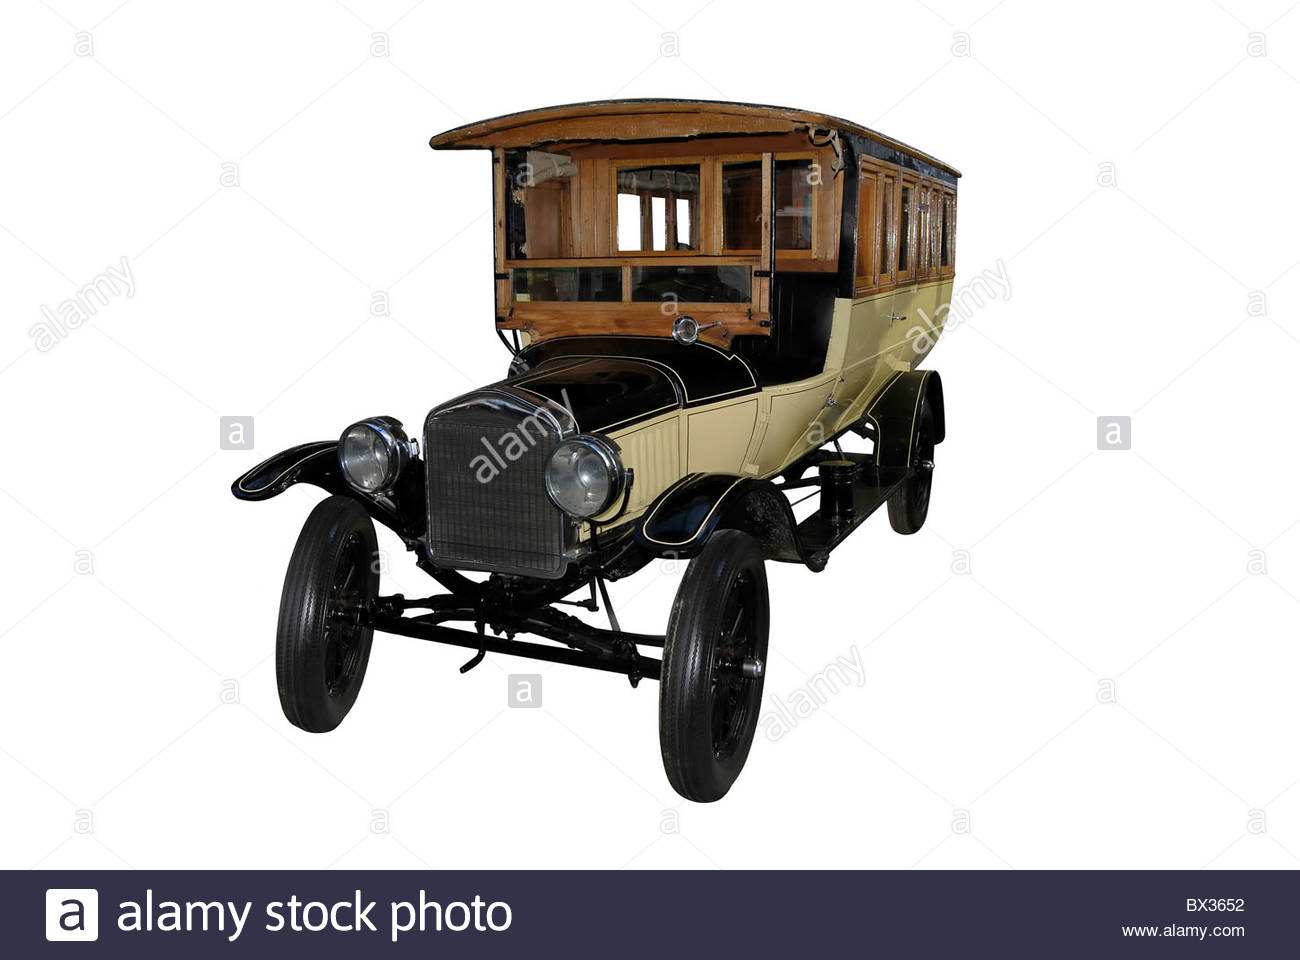 wood and metal old car used as public transport - Stock Image